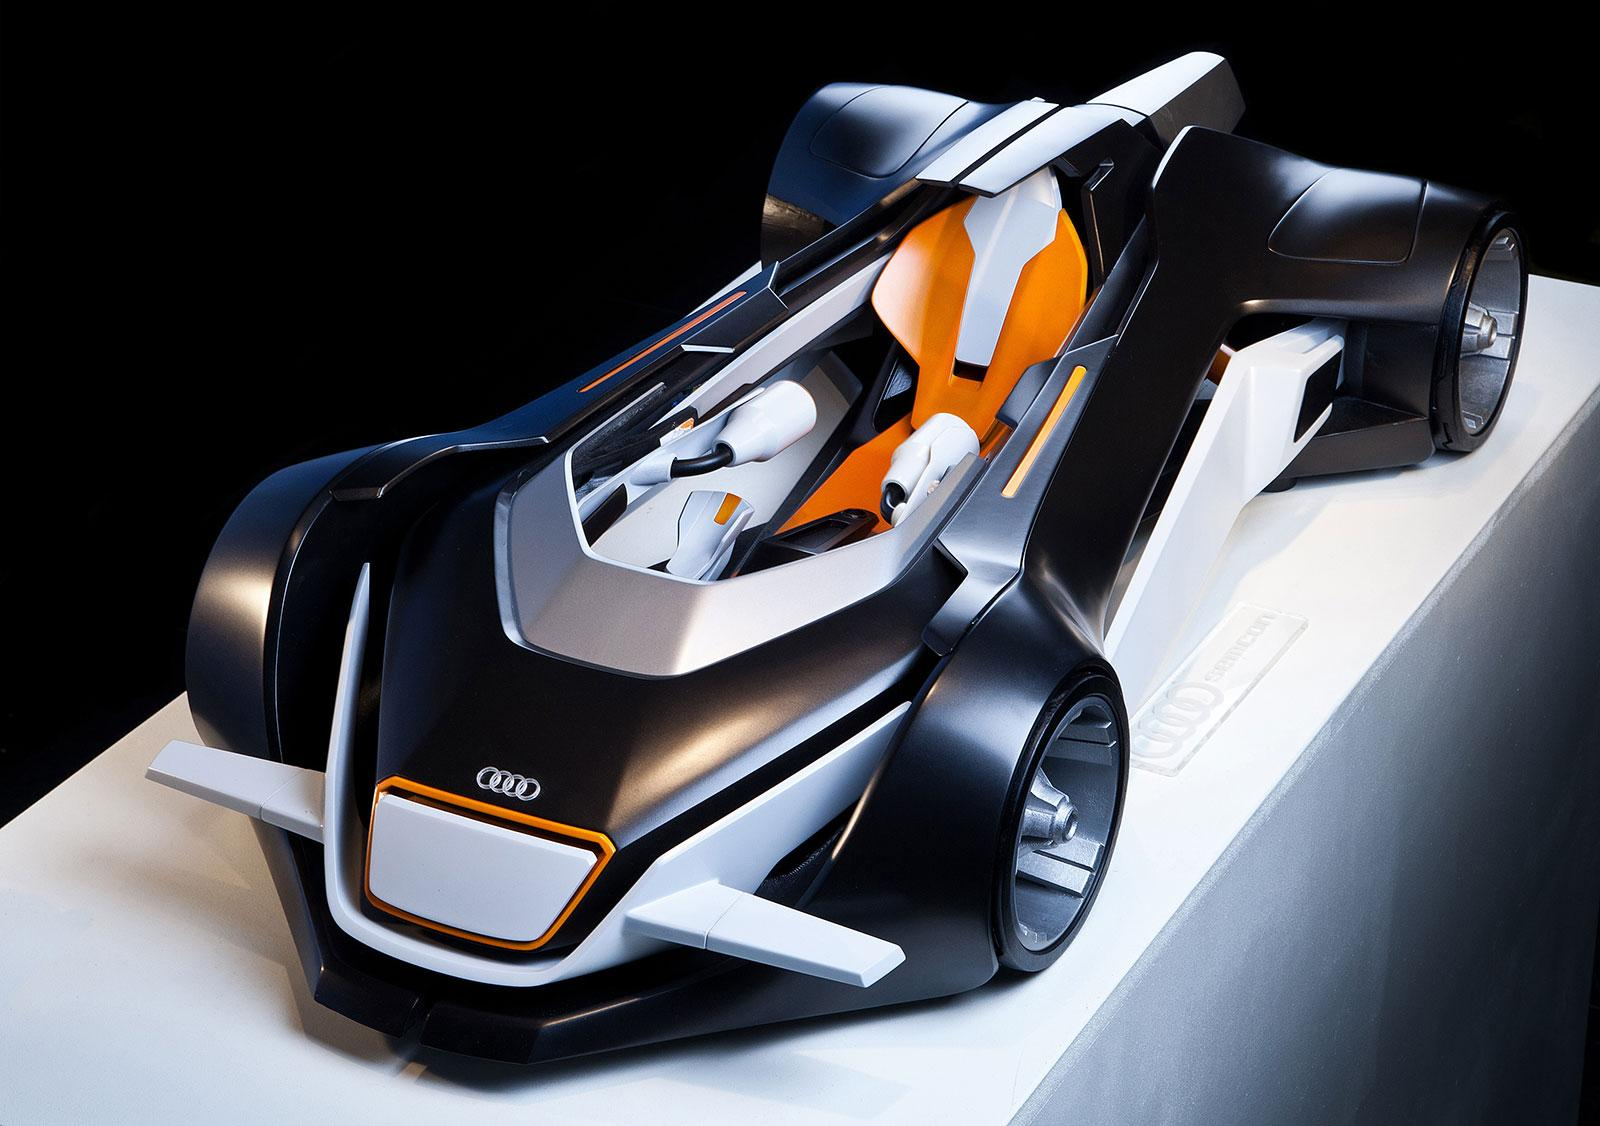 Audi Elite Concept Scale Model - Car Body Design